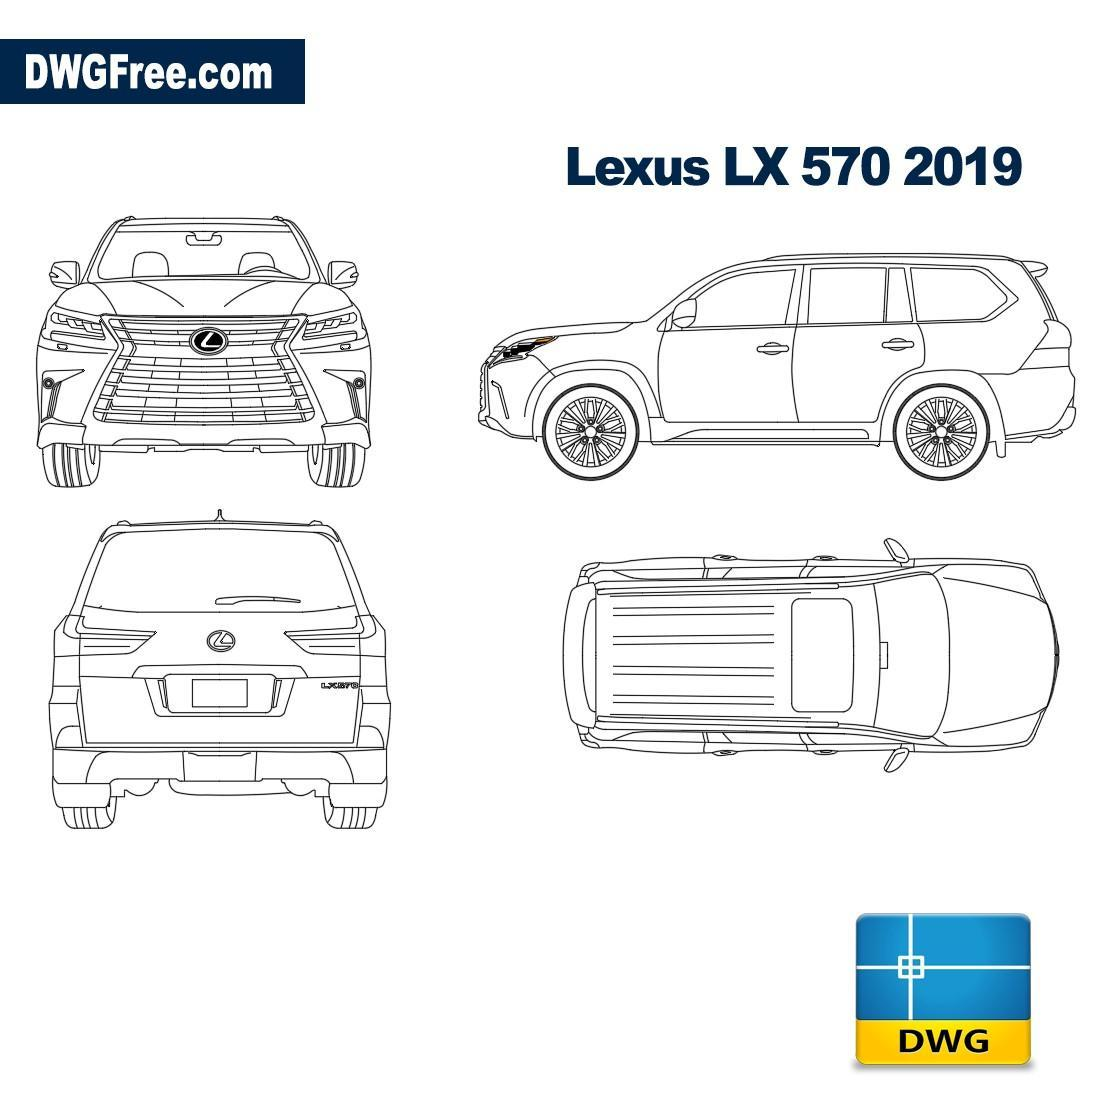 Autocad Blocks Lexus Lx570 2019